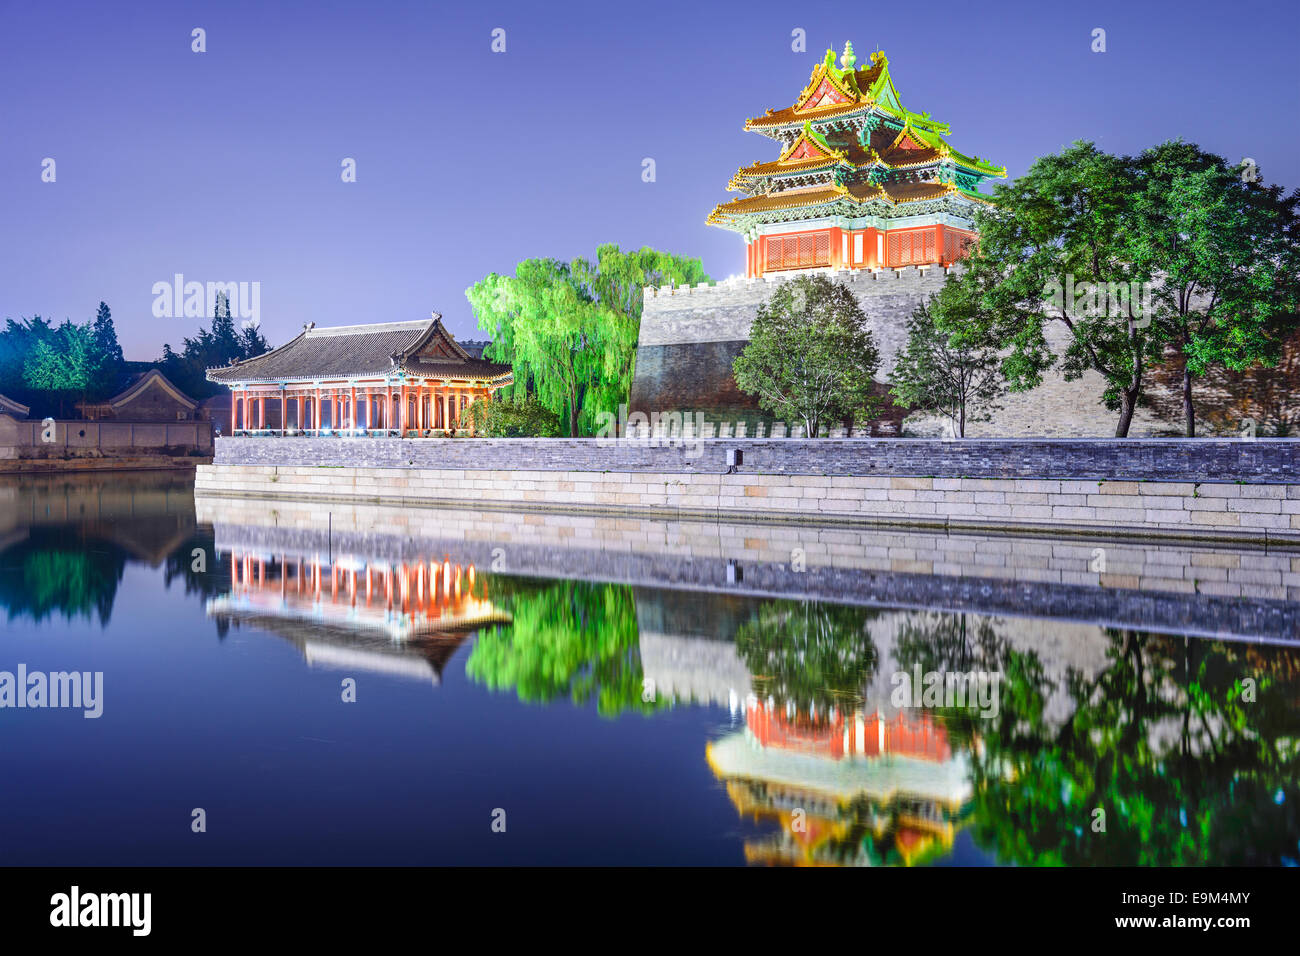 Forbidden City Outer Moat in Beijing, China at night. - Stock Image